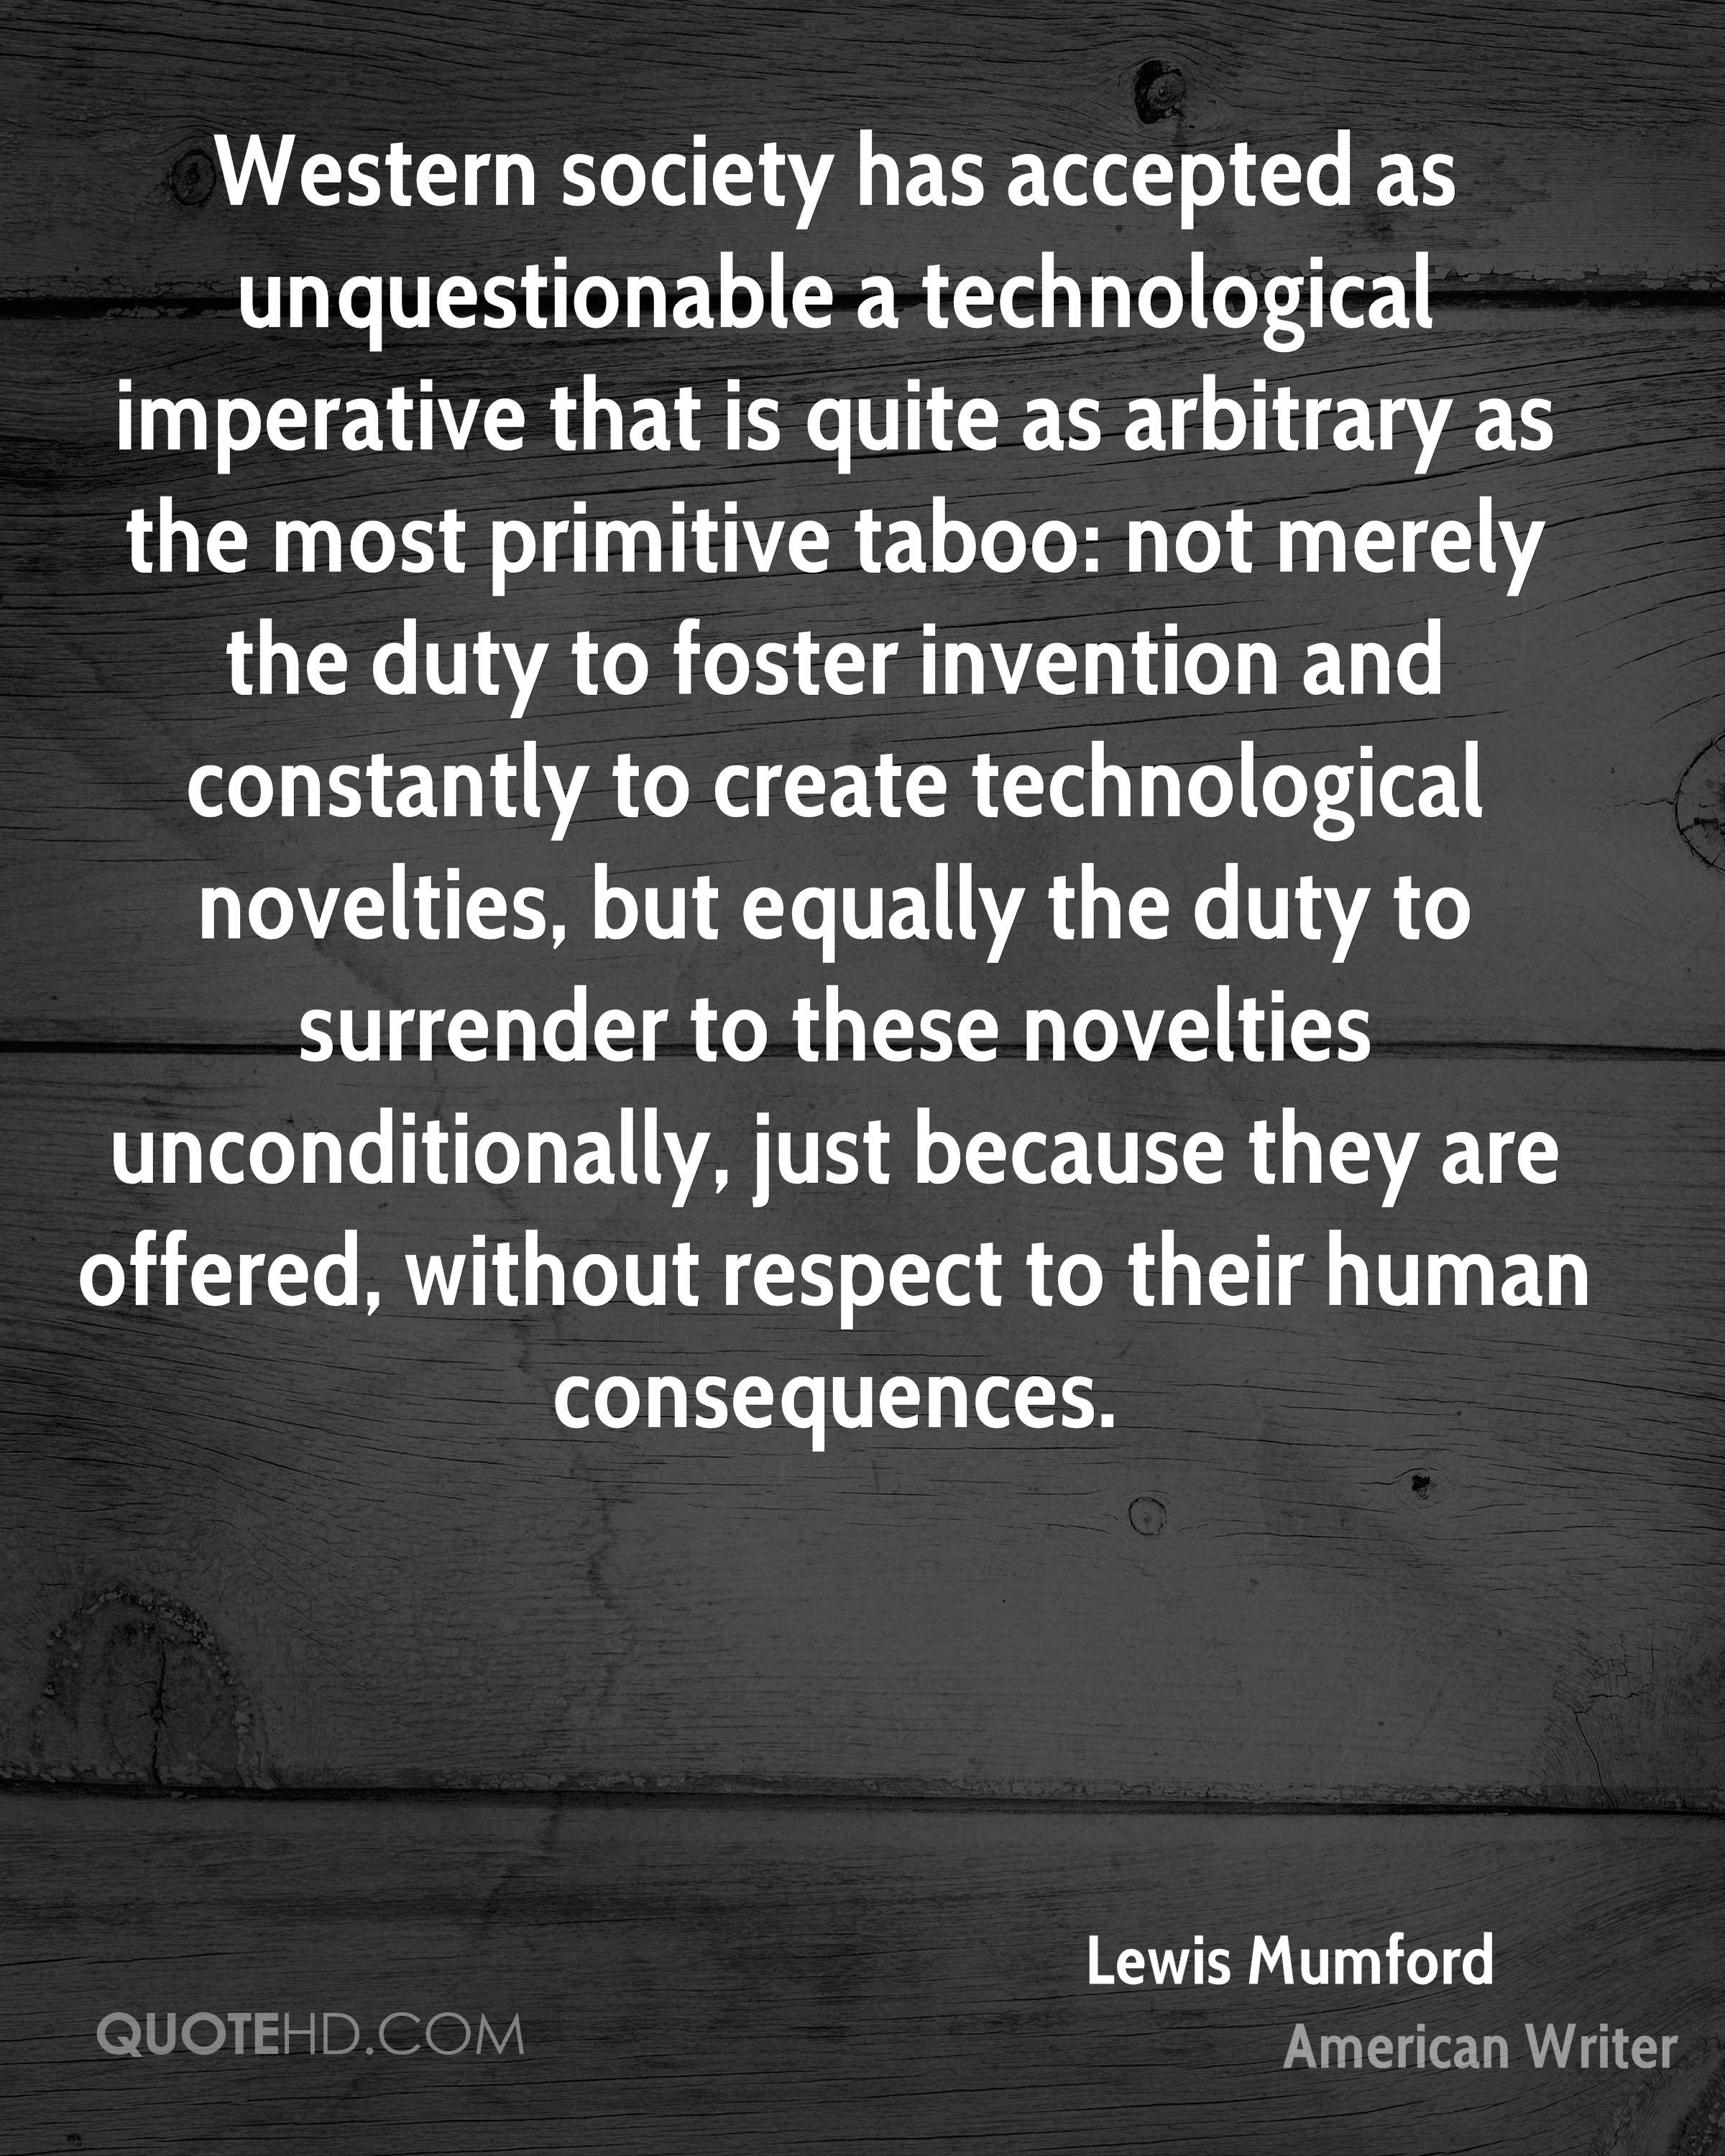 Western society has accepted as unquestionable a technological imperative that is quite as arbitrary as the most primitive taboo: not merely the duty to foster invention and constantly to create technological novelties, but equally the duty to surrender to these novelties unconditionally, just because they are offered, without respect to their human consequences.